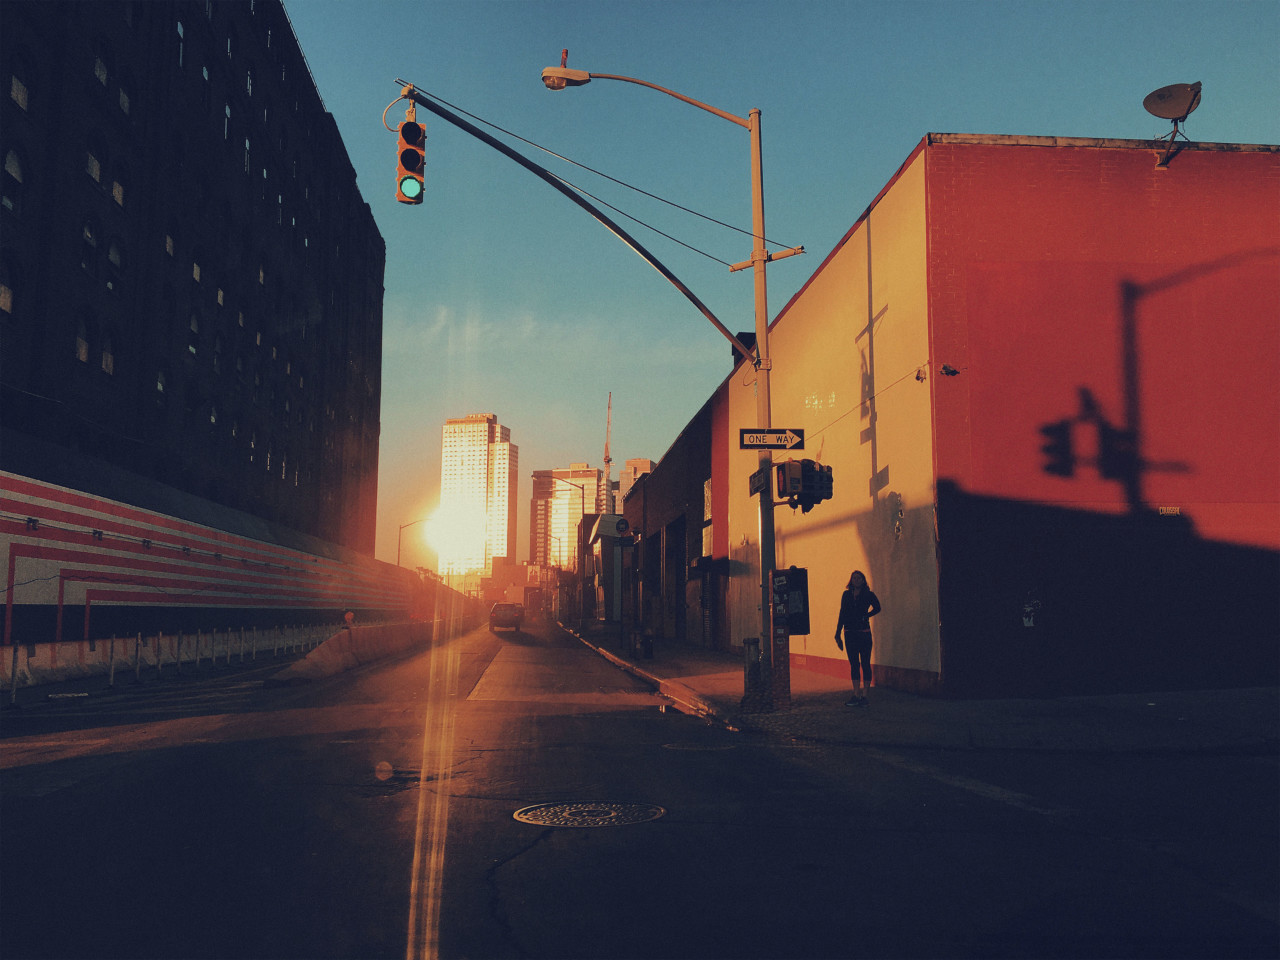 USA. Brooklyn, NY. 2016. Sunset on Kent Avenue and South 3rd in Williamsburg. Barricades line the Domino Sugar factory construction site.